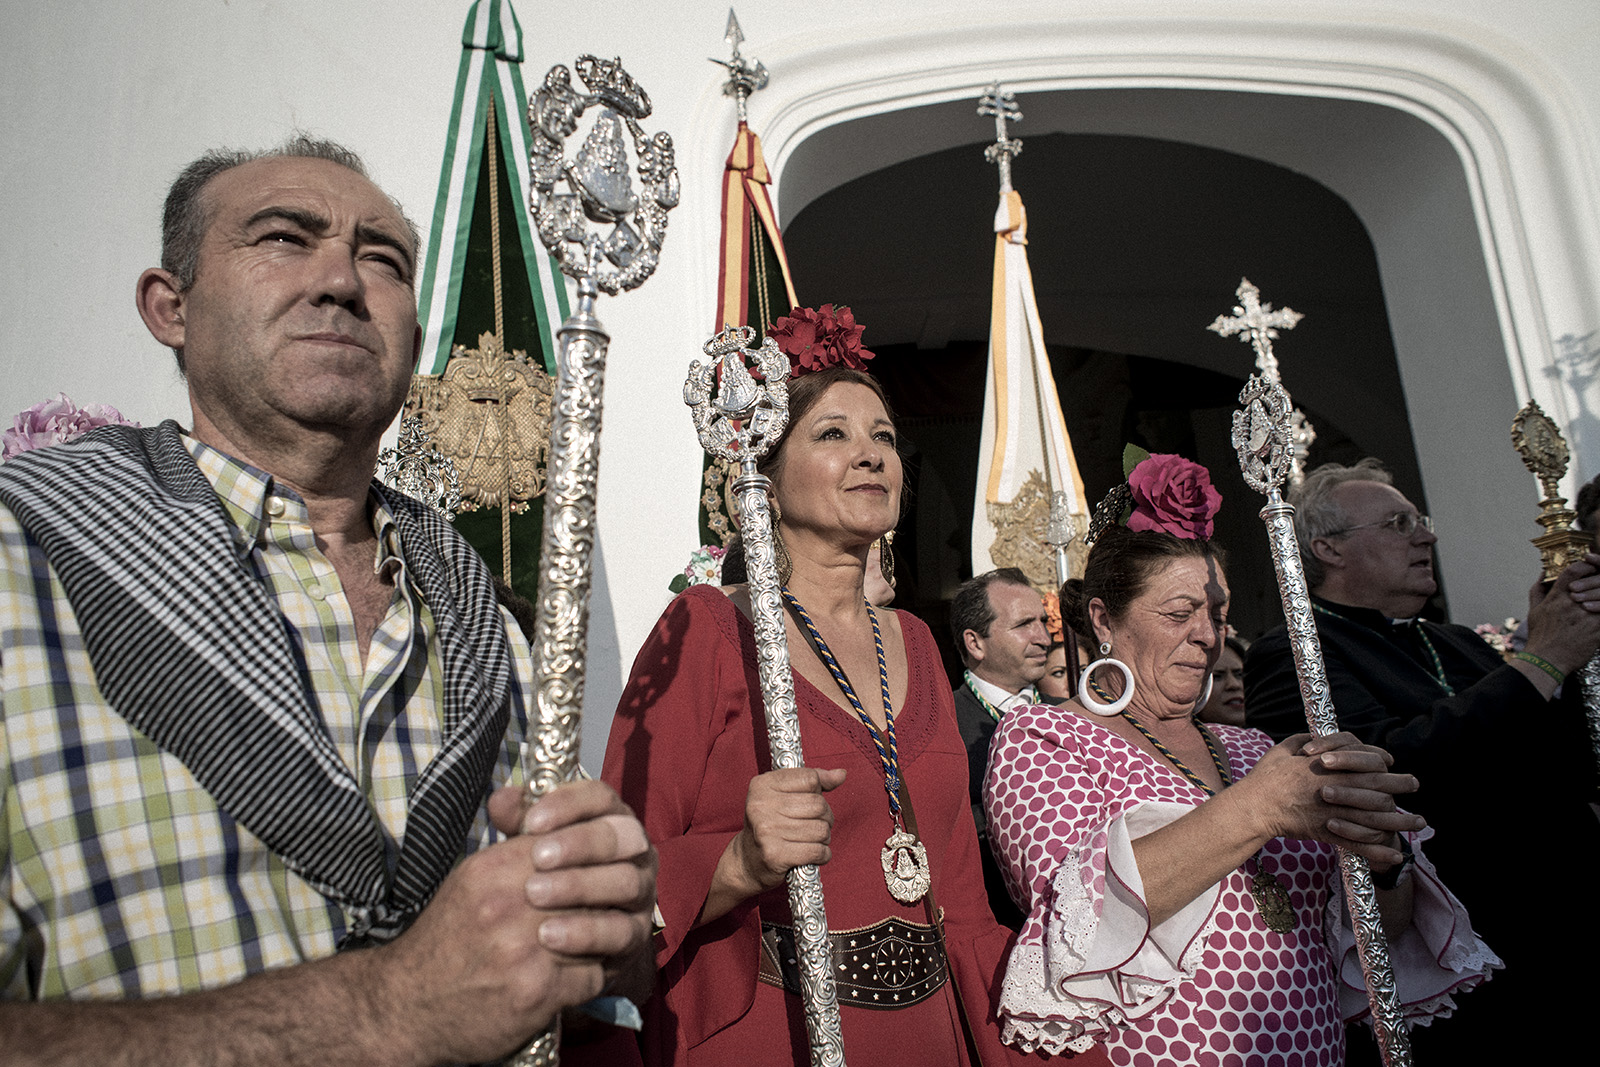 Each brotherhood has its own committee in charge, usually the ones carrying decorated metal batons. As each brotherhood arrives to town they have to offer their respects to the Holy Mary. The big square in front of the hermitage serves as stage of the offerings. El Rocío, Spain, May 2015.